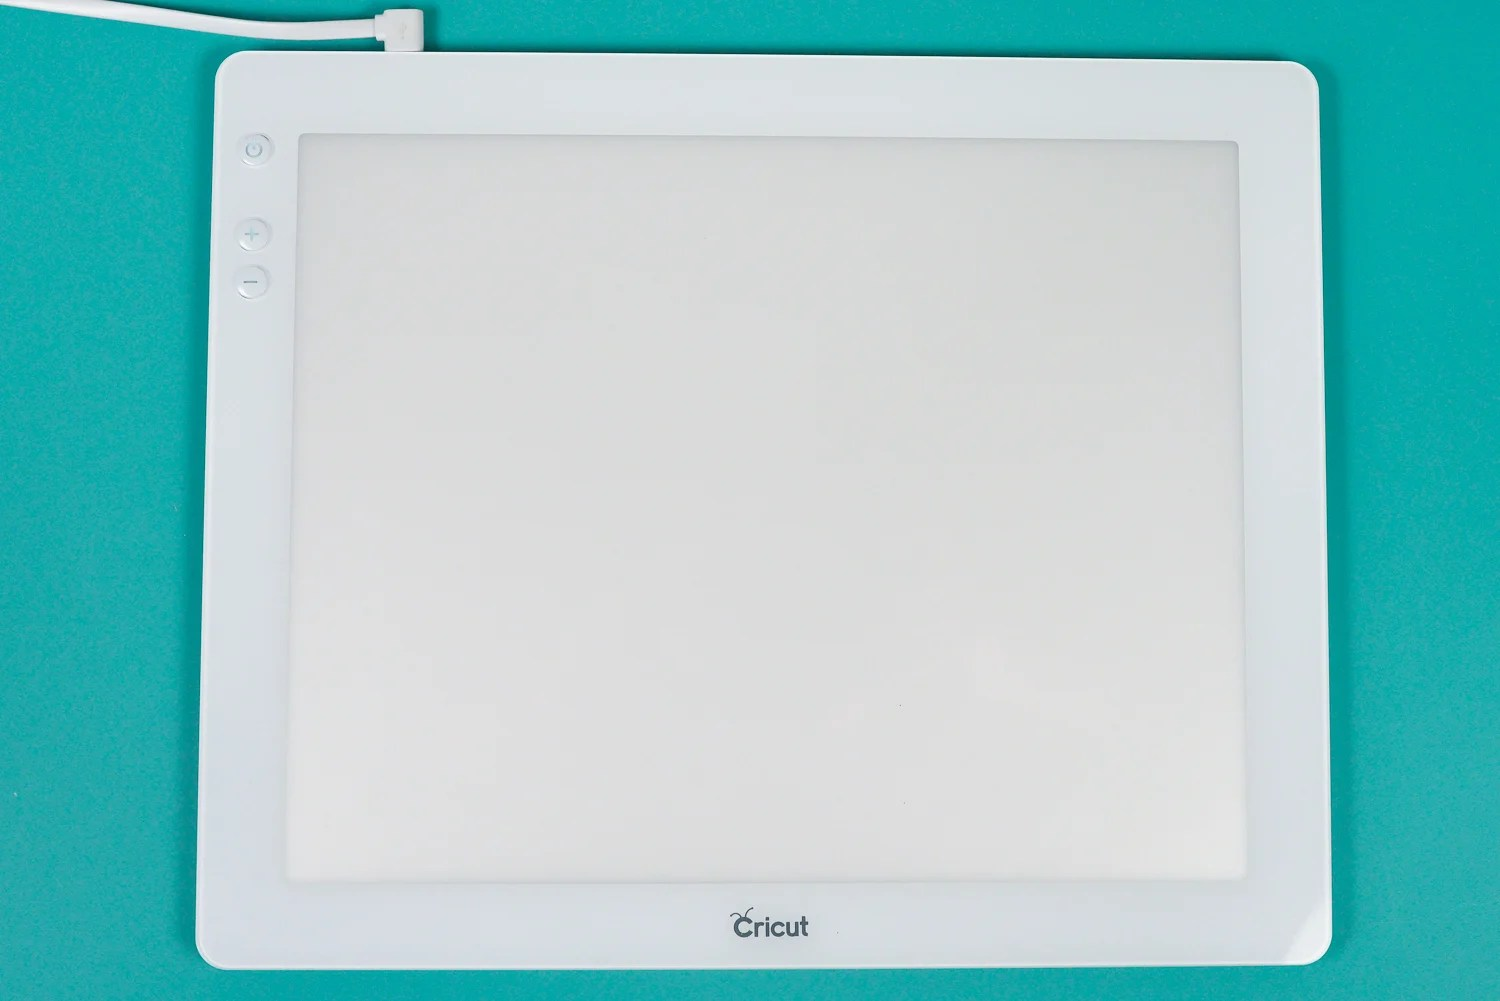 Cricut Brightpad out of the box